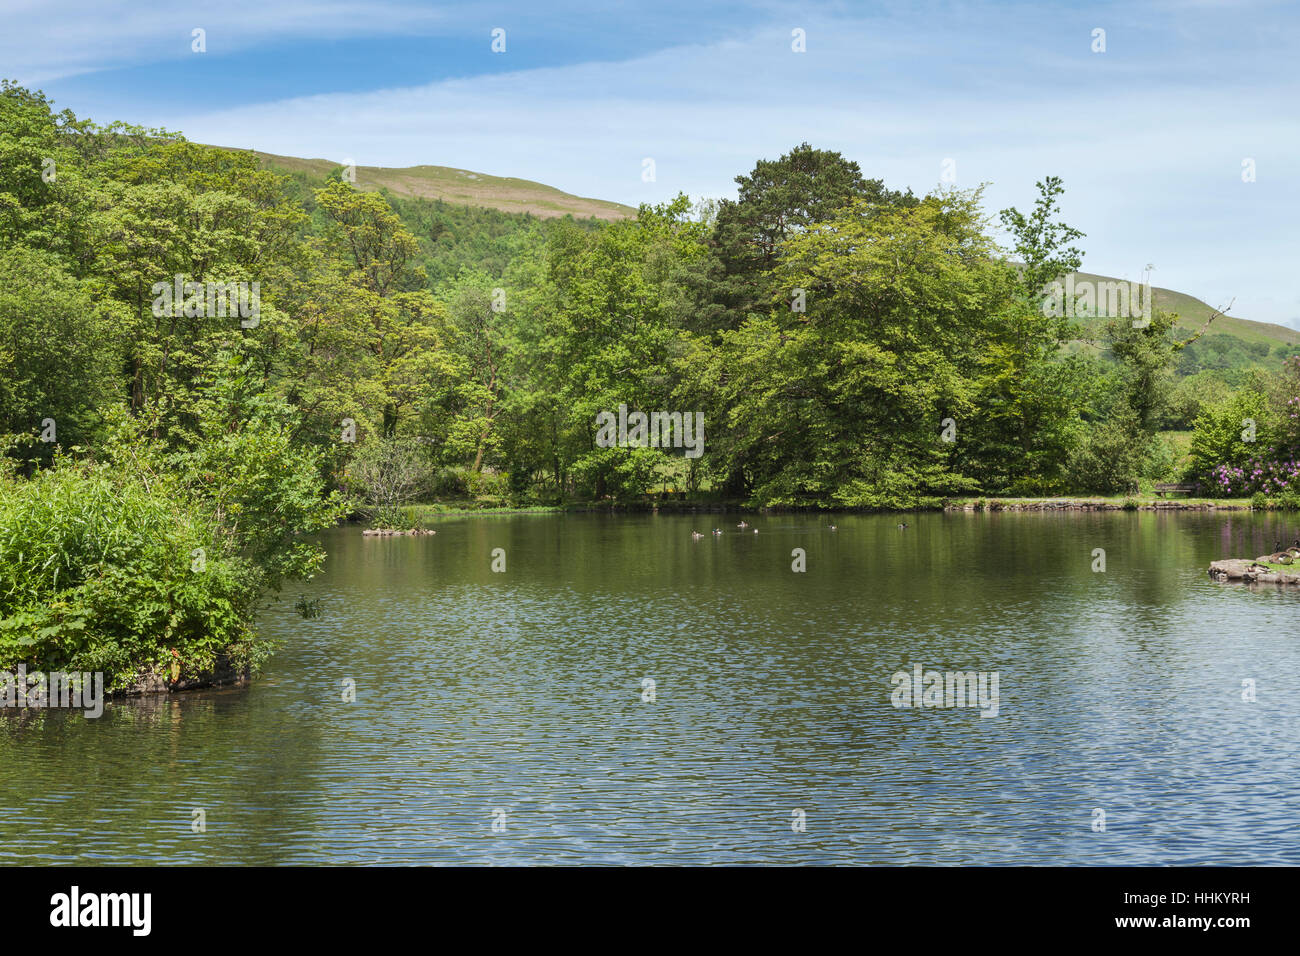 The Fishpond, Craig-y-Nos Country Park, Pen-y-cae, Brecon Beacons National Park, Powys, South Wales, UK - Stock Image